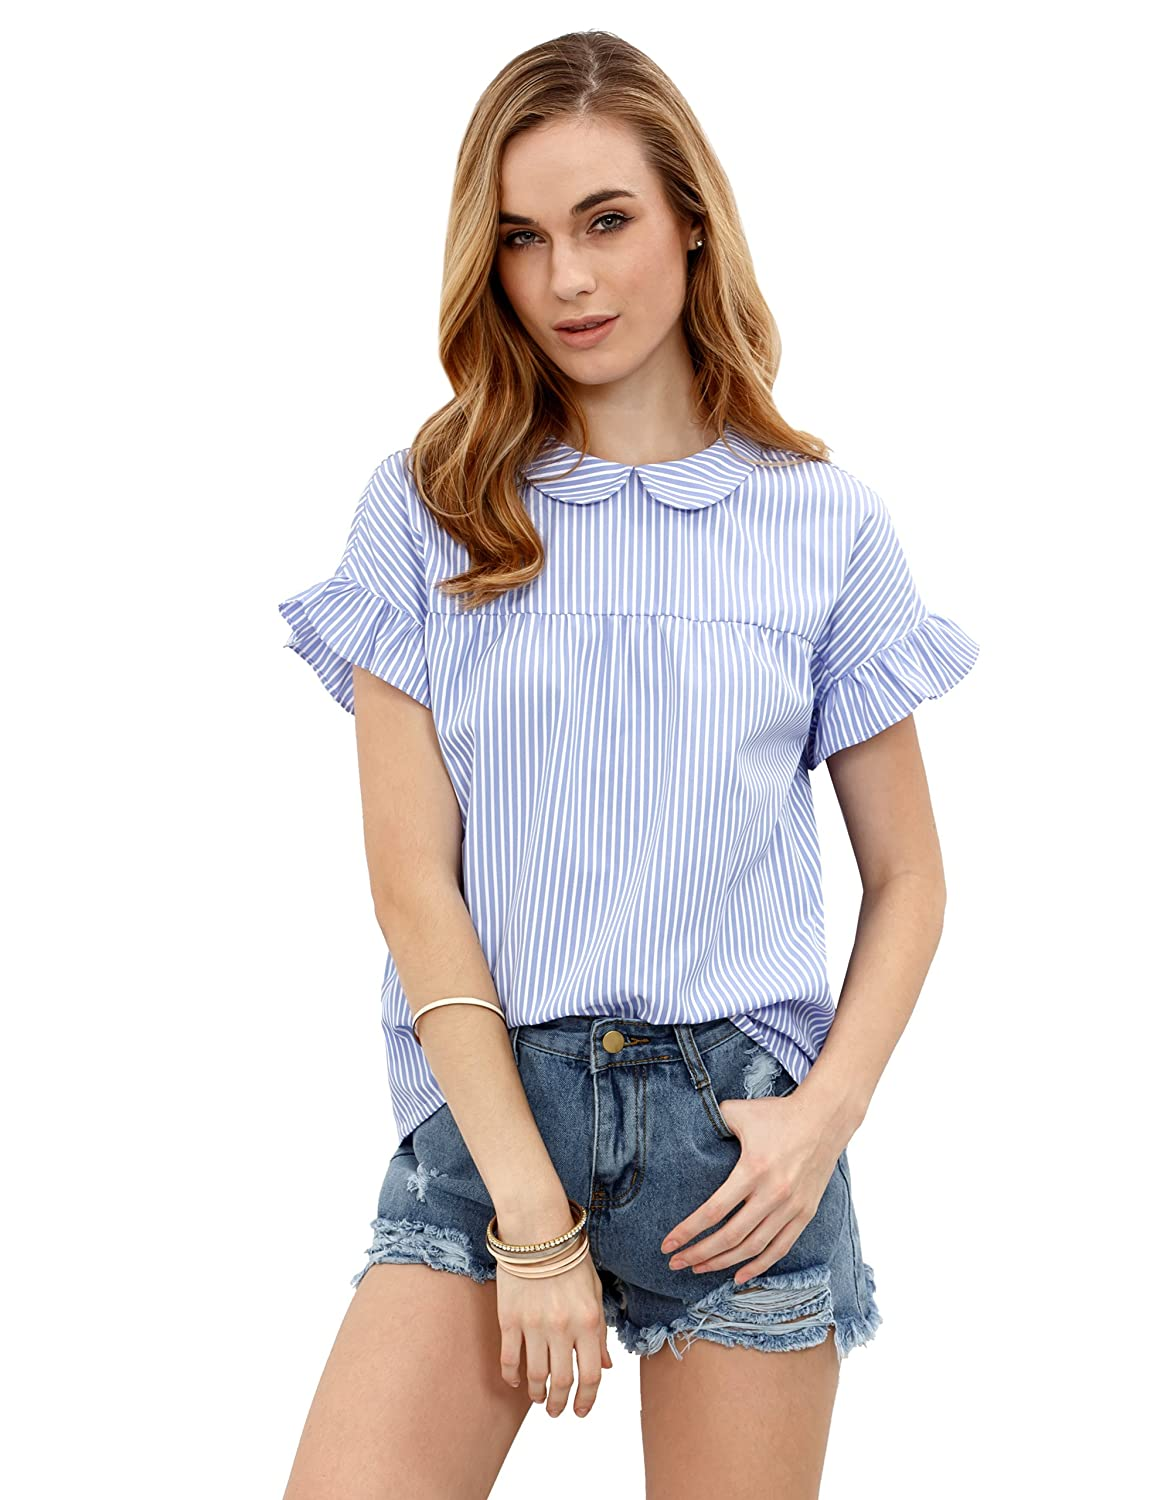 2dbfab78ae Peter pan collar,striped,ruffle short sleeve,and back bow tie blouse top.  Cute and stylish, easily match with your pants,skirt,jeans,ect.